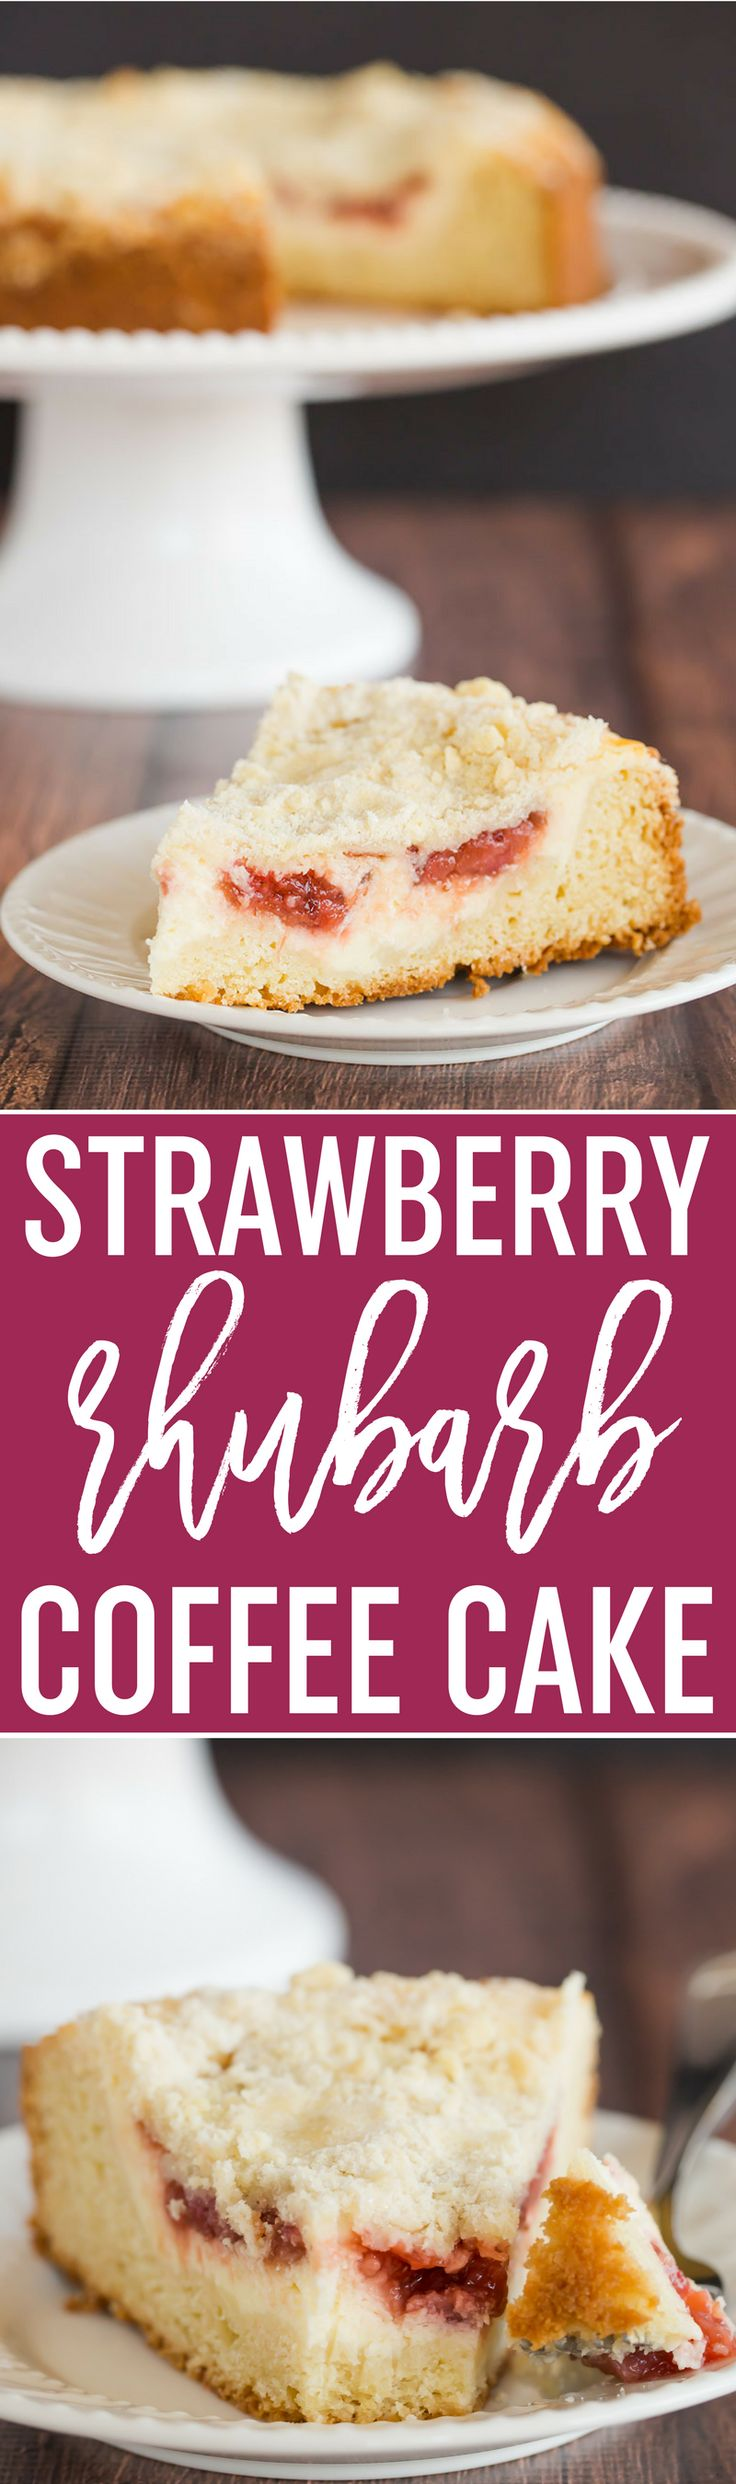 Strawberry Rhubarb Coffee Cake - A biscuit-like cake topped with a cream cheese filling and homemade strawberry rhubarb jam. via @browneyedbaker